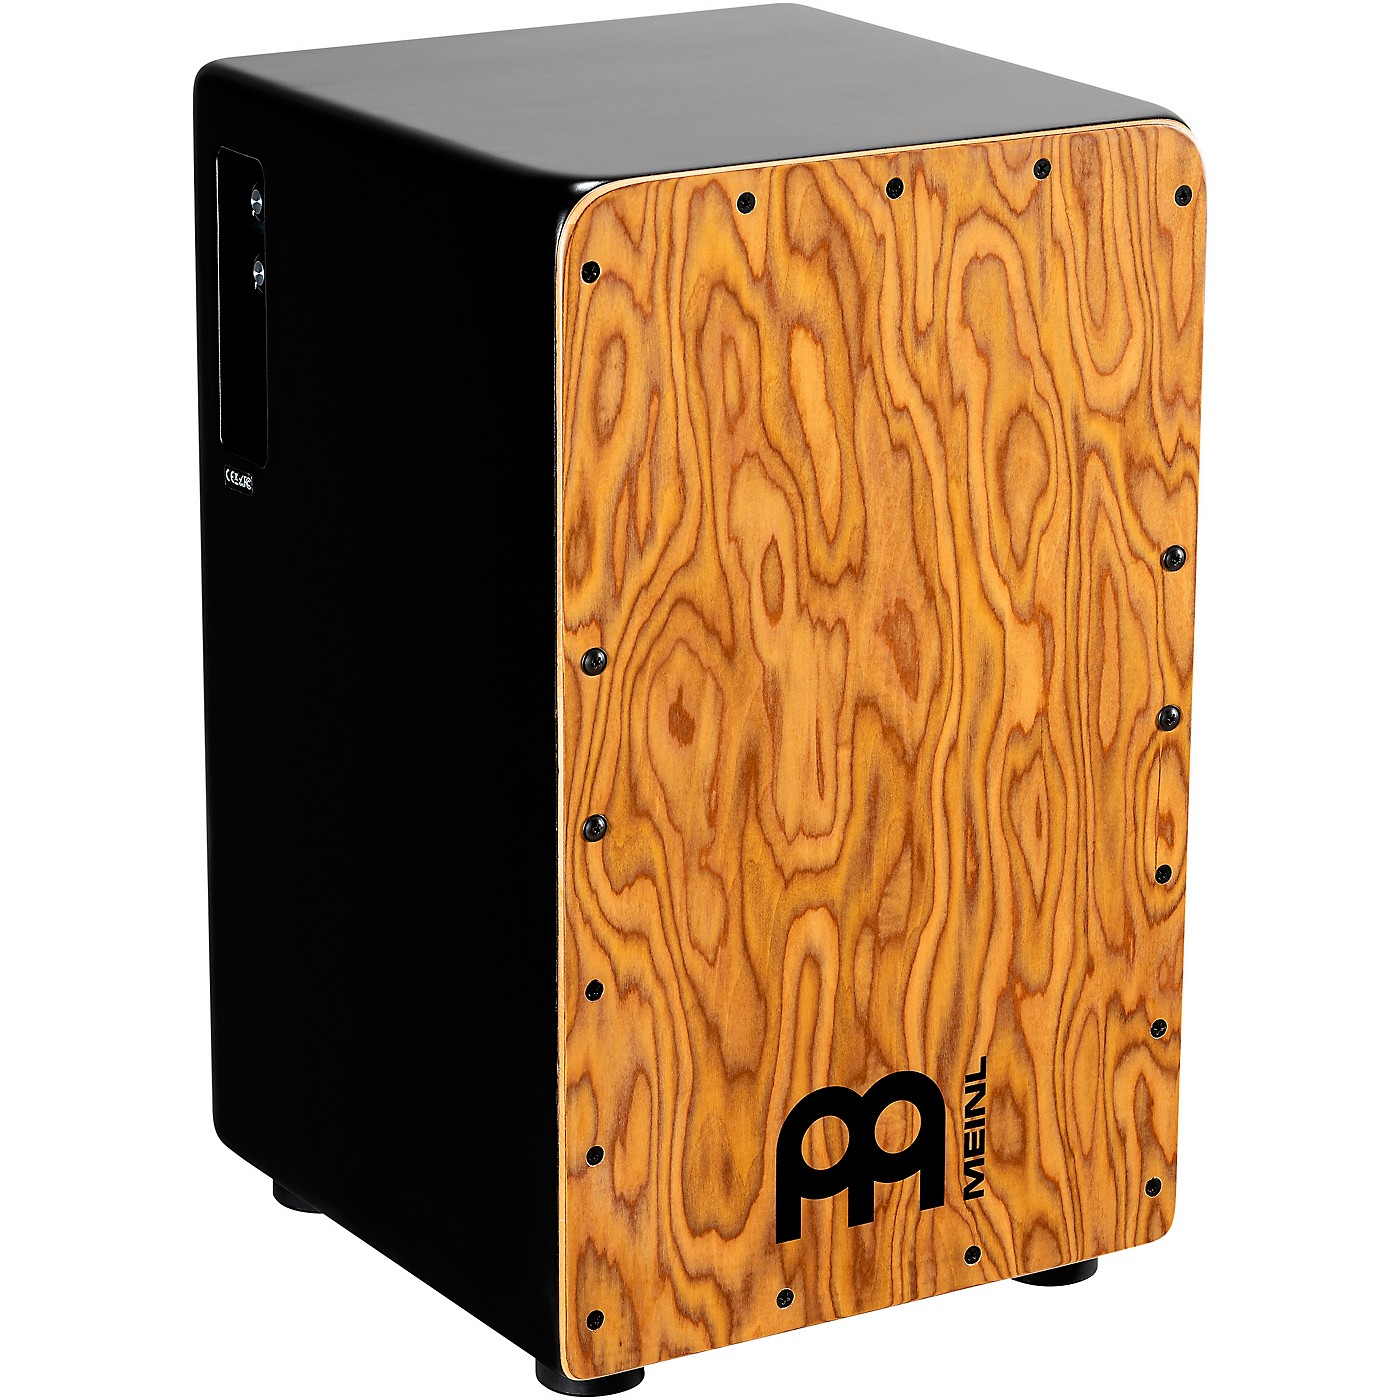 Meinl Woodcraft Series Professional Pickup Cajon with Makah Burl Frontplate thumbnail